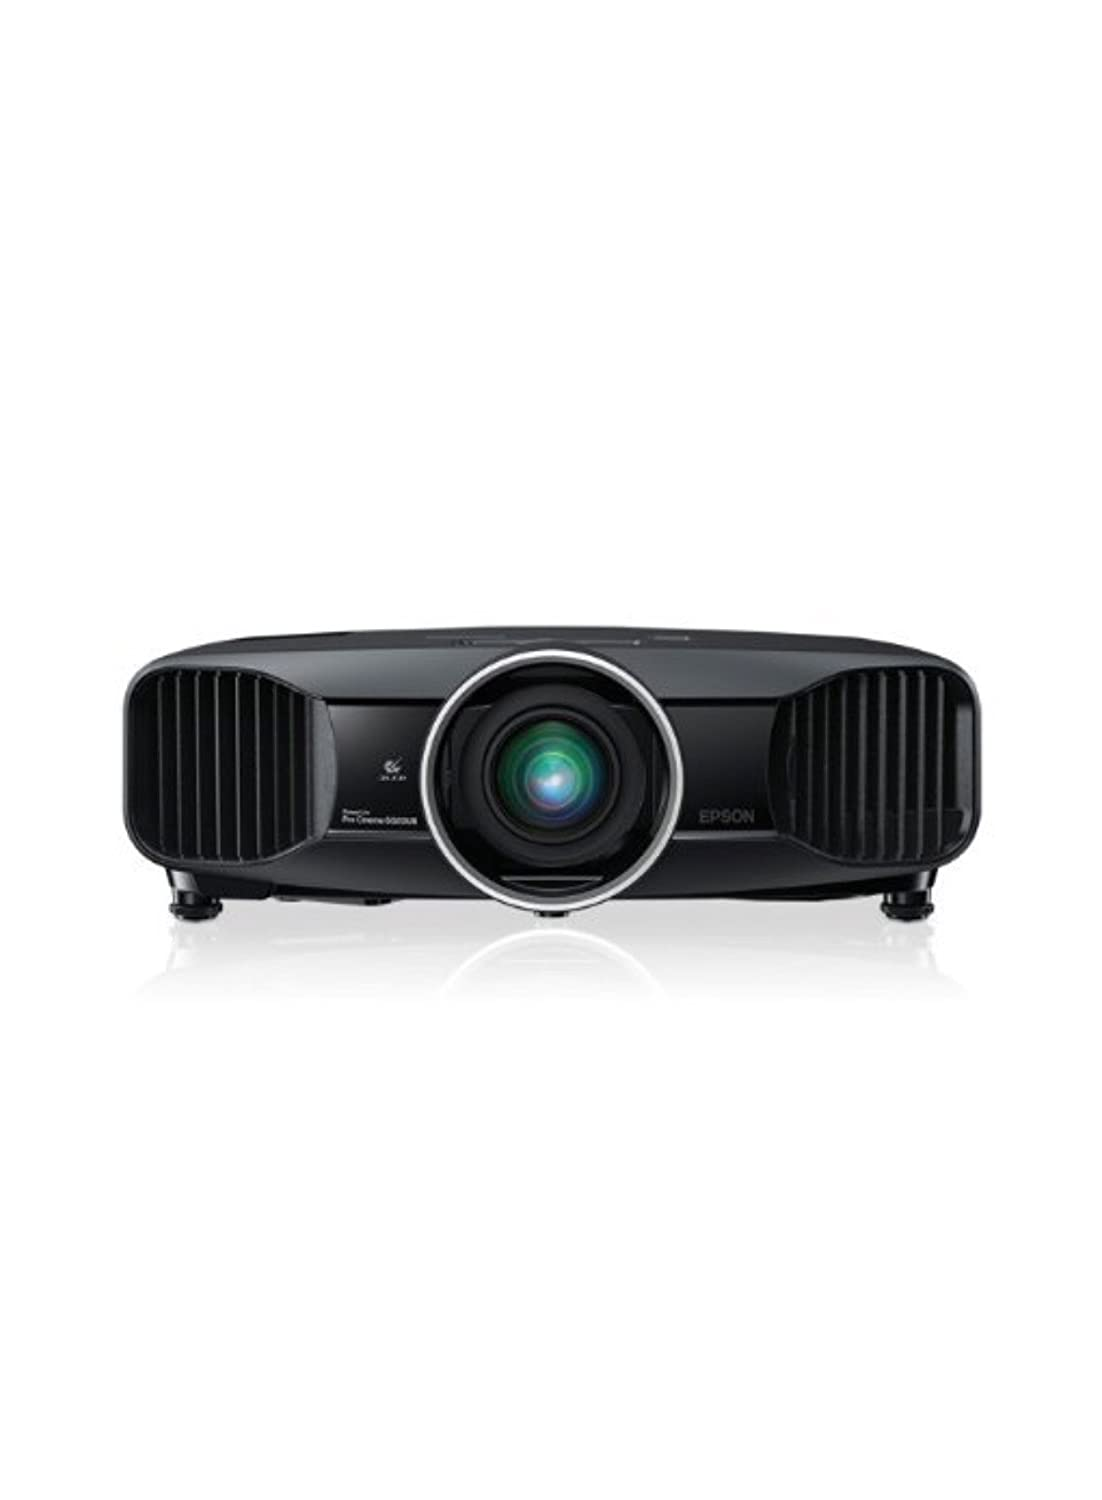 Epson PowerLite Pro Cinema opticinema 3d 1080p 3LCD proyector con ...